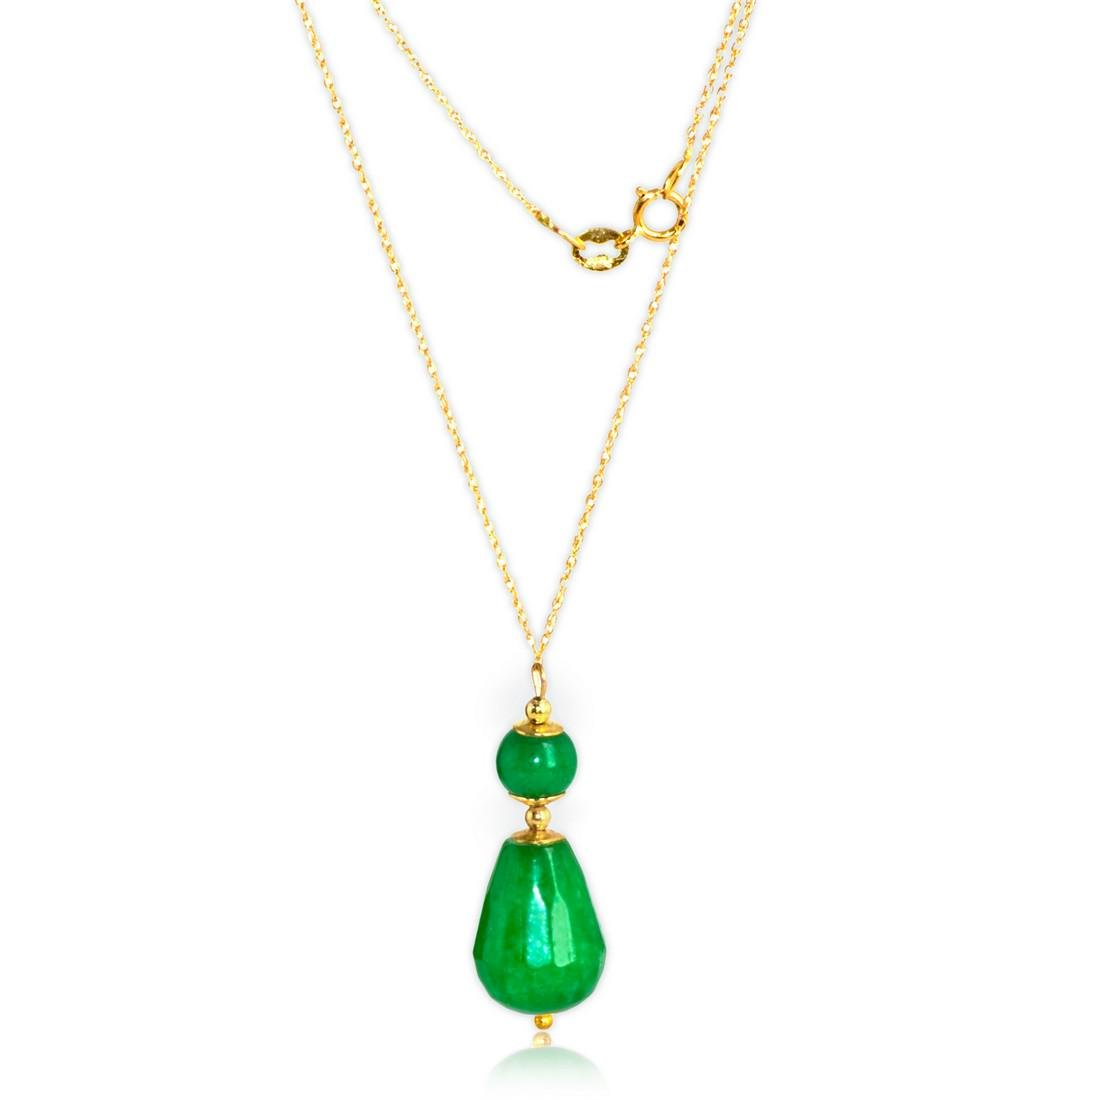 18K Retro Style Colier with Imperial Emerald Green Jade